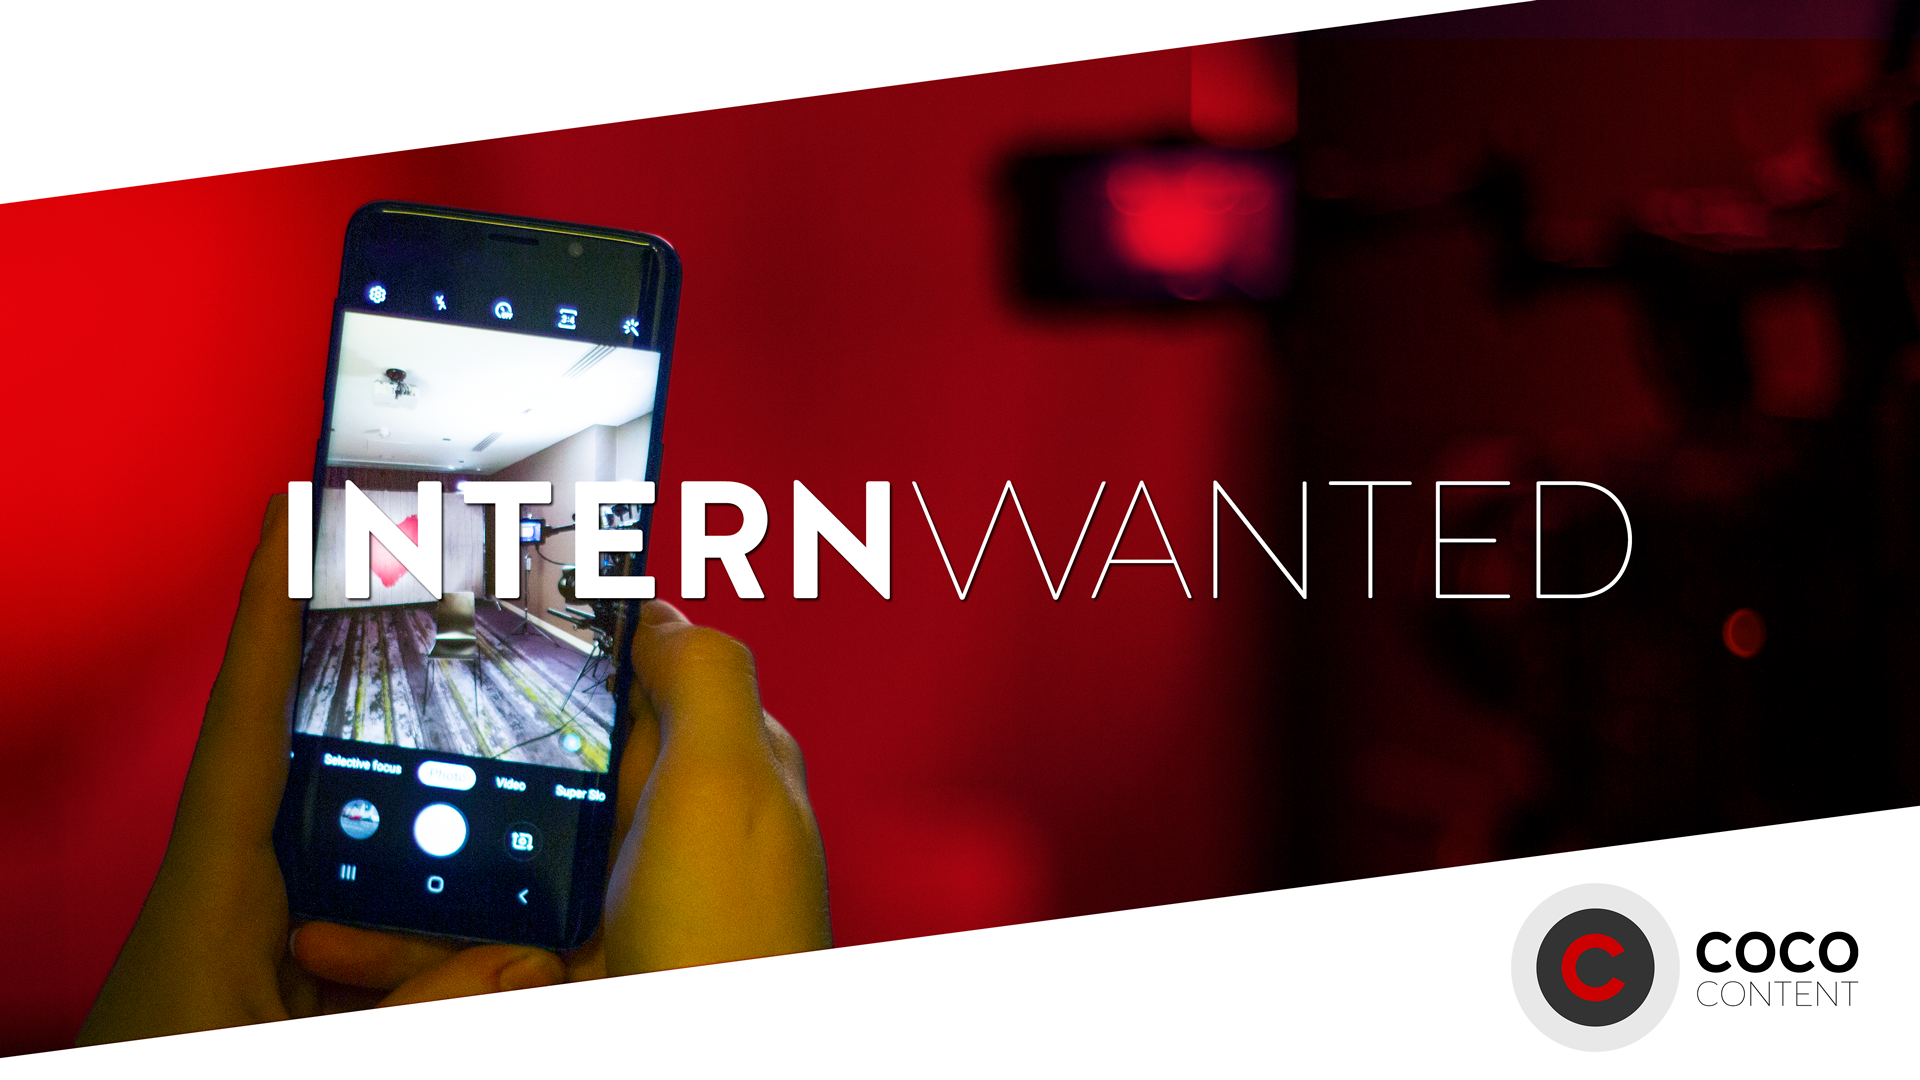 Intern Wanted – COCO Content